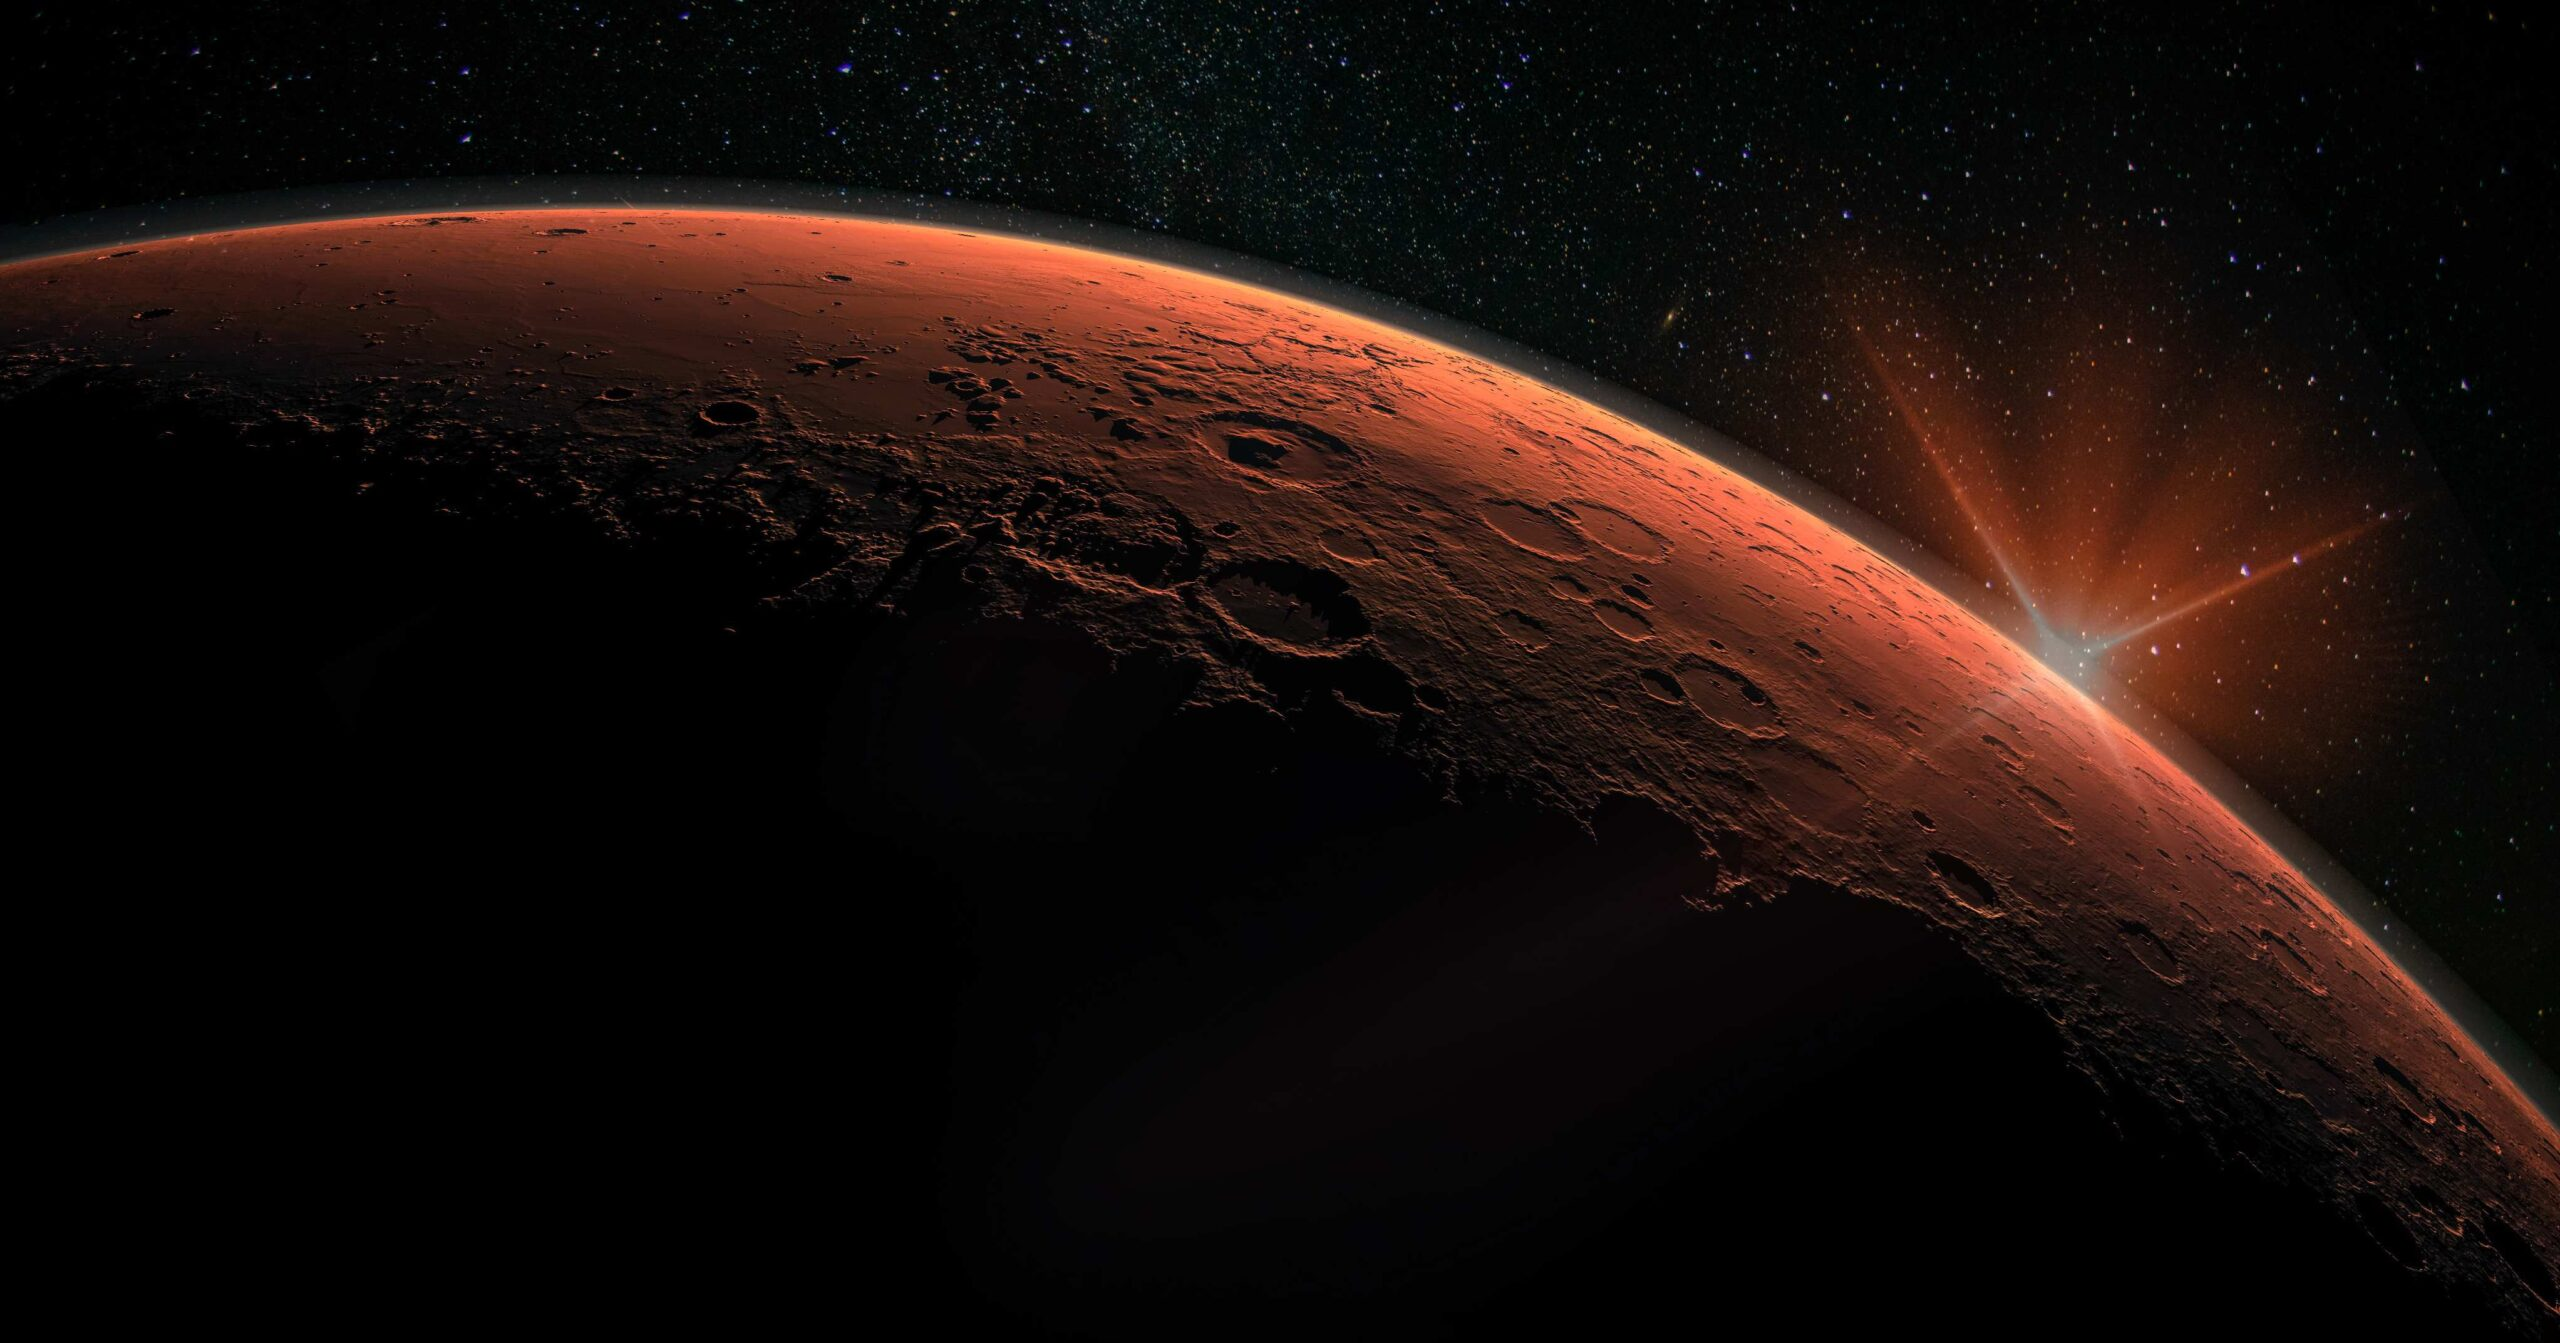 Martian Subsurface Could Be Habitable